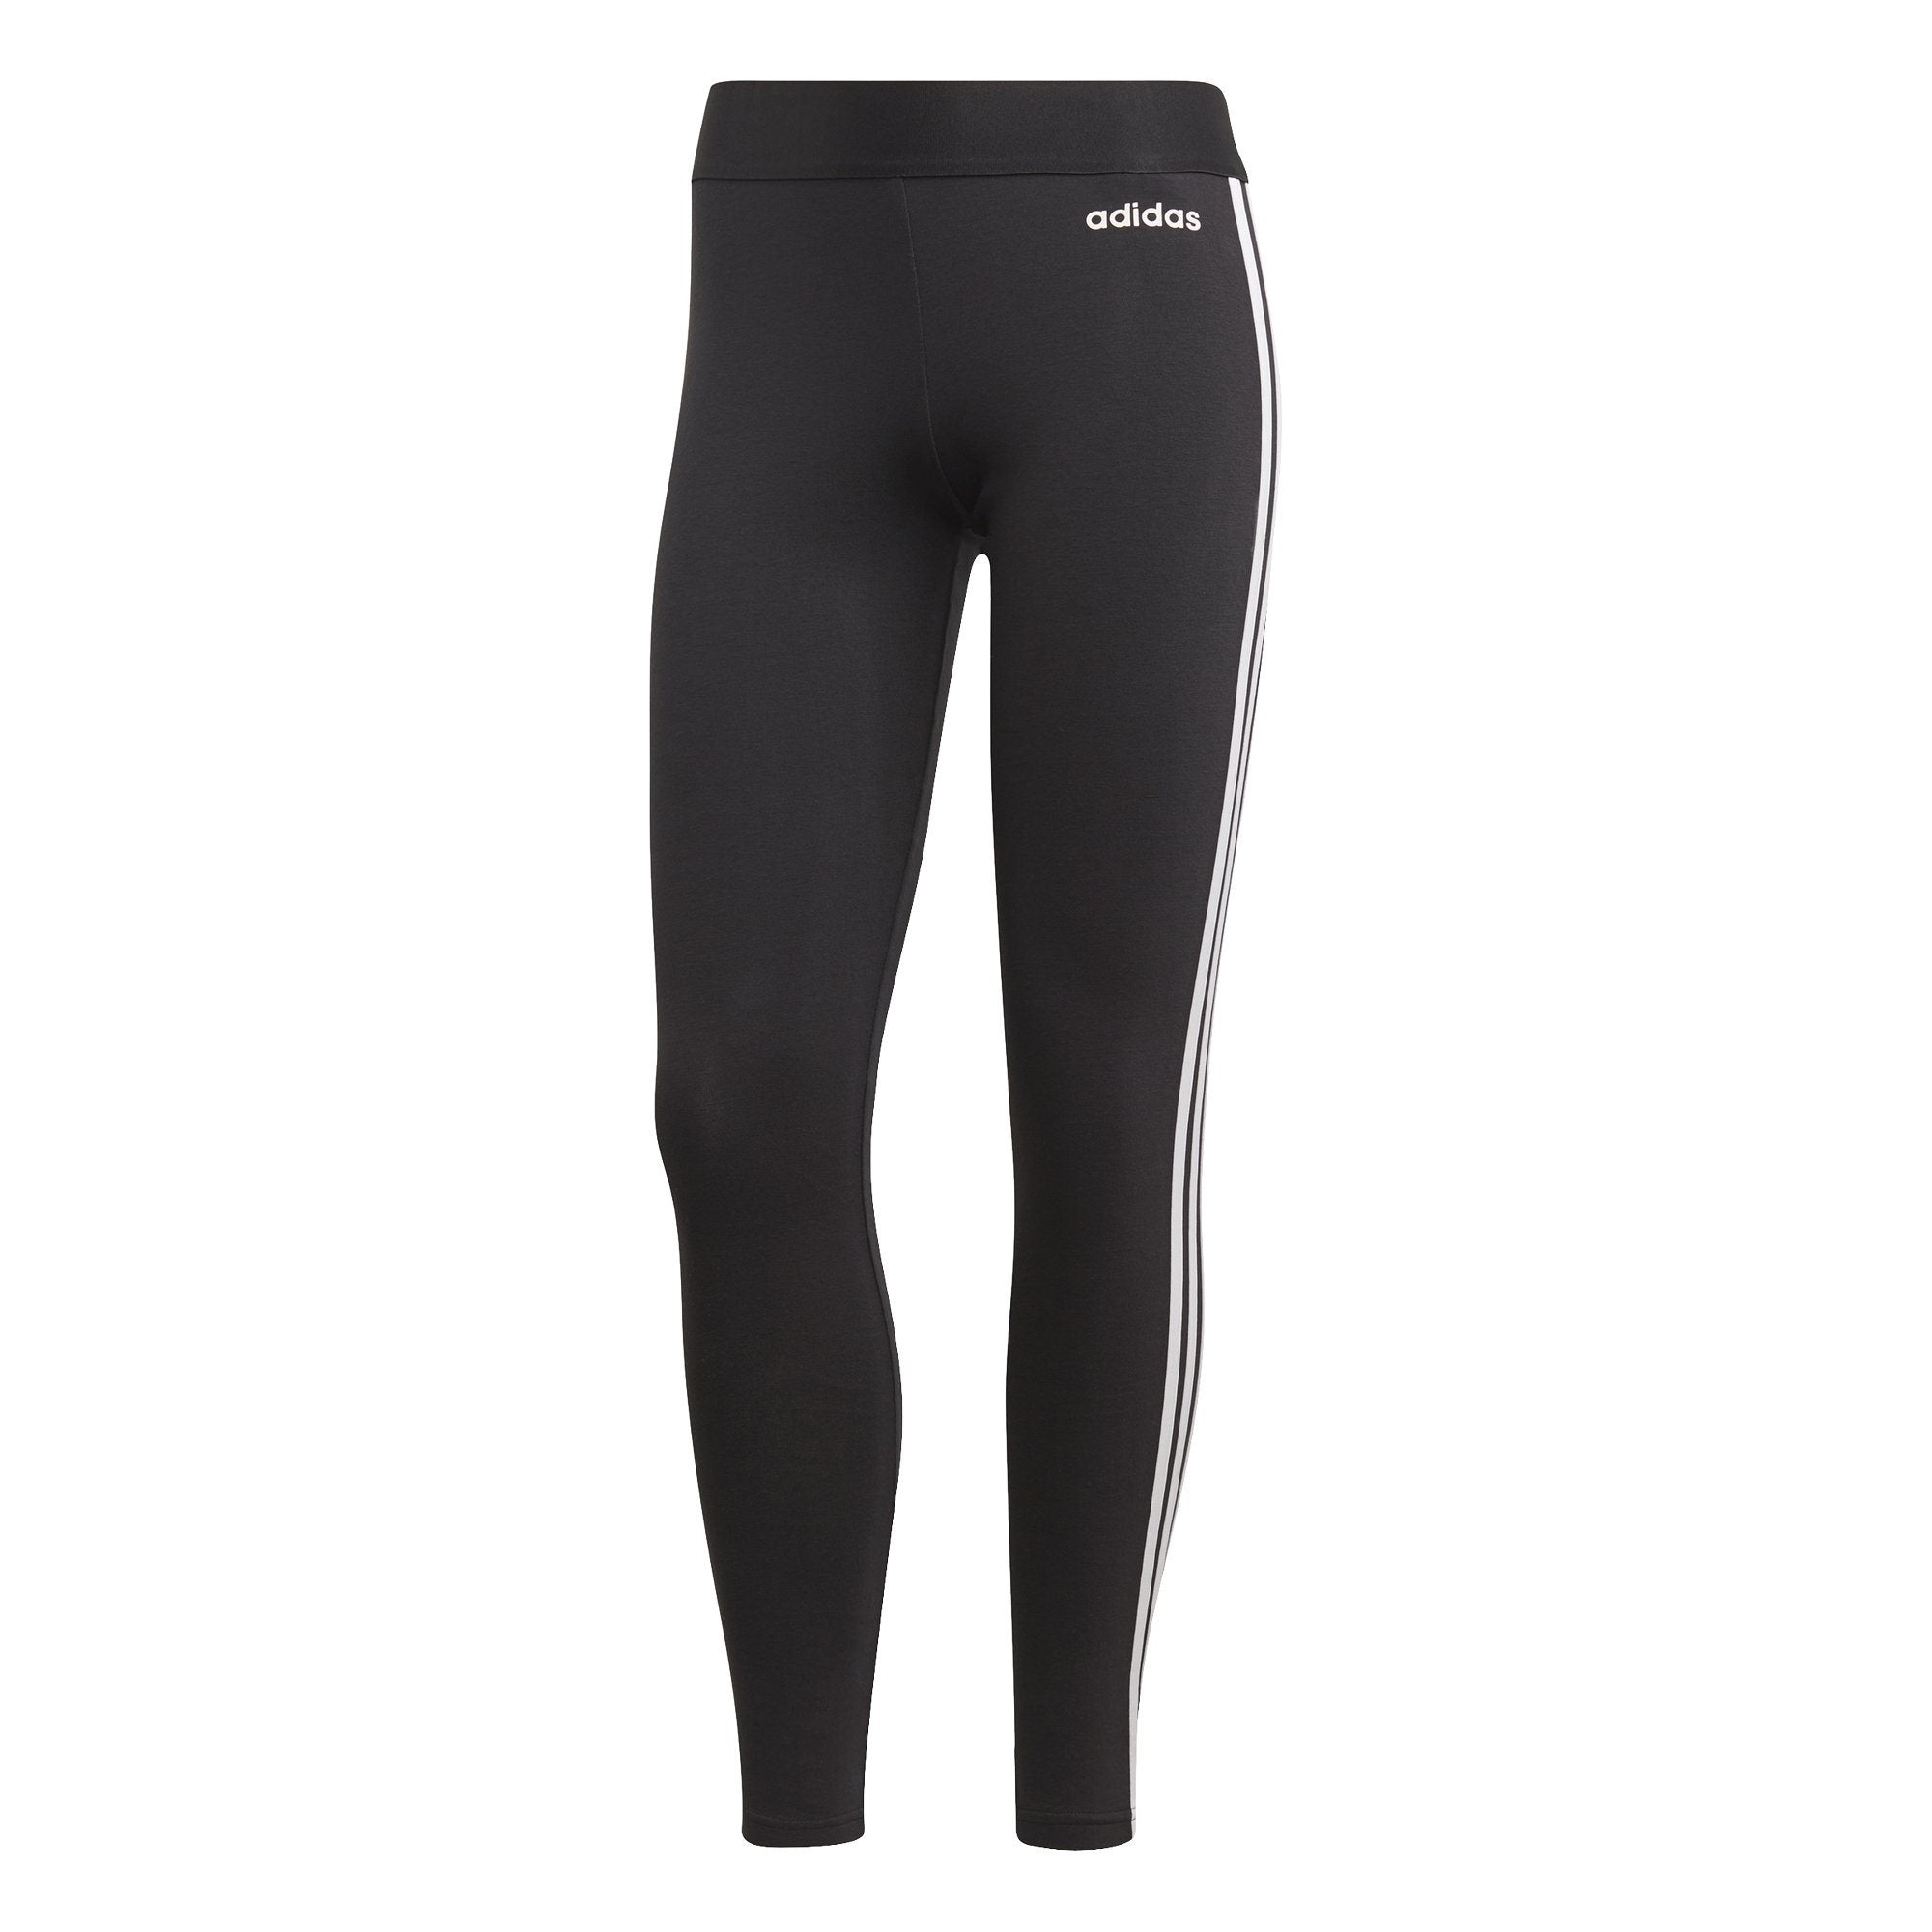 Adidas Womens Essentials 3-Stripes Tights - black/white